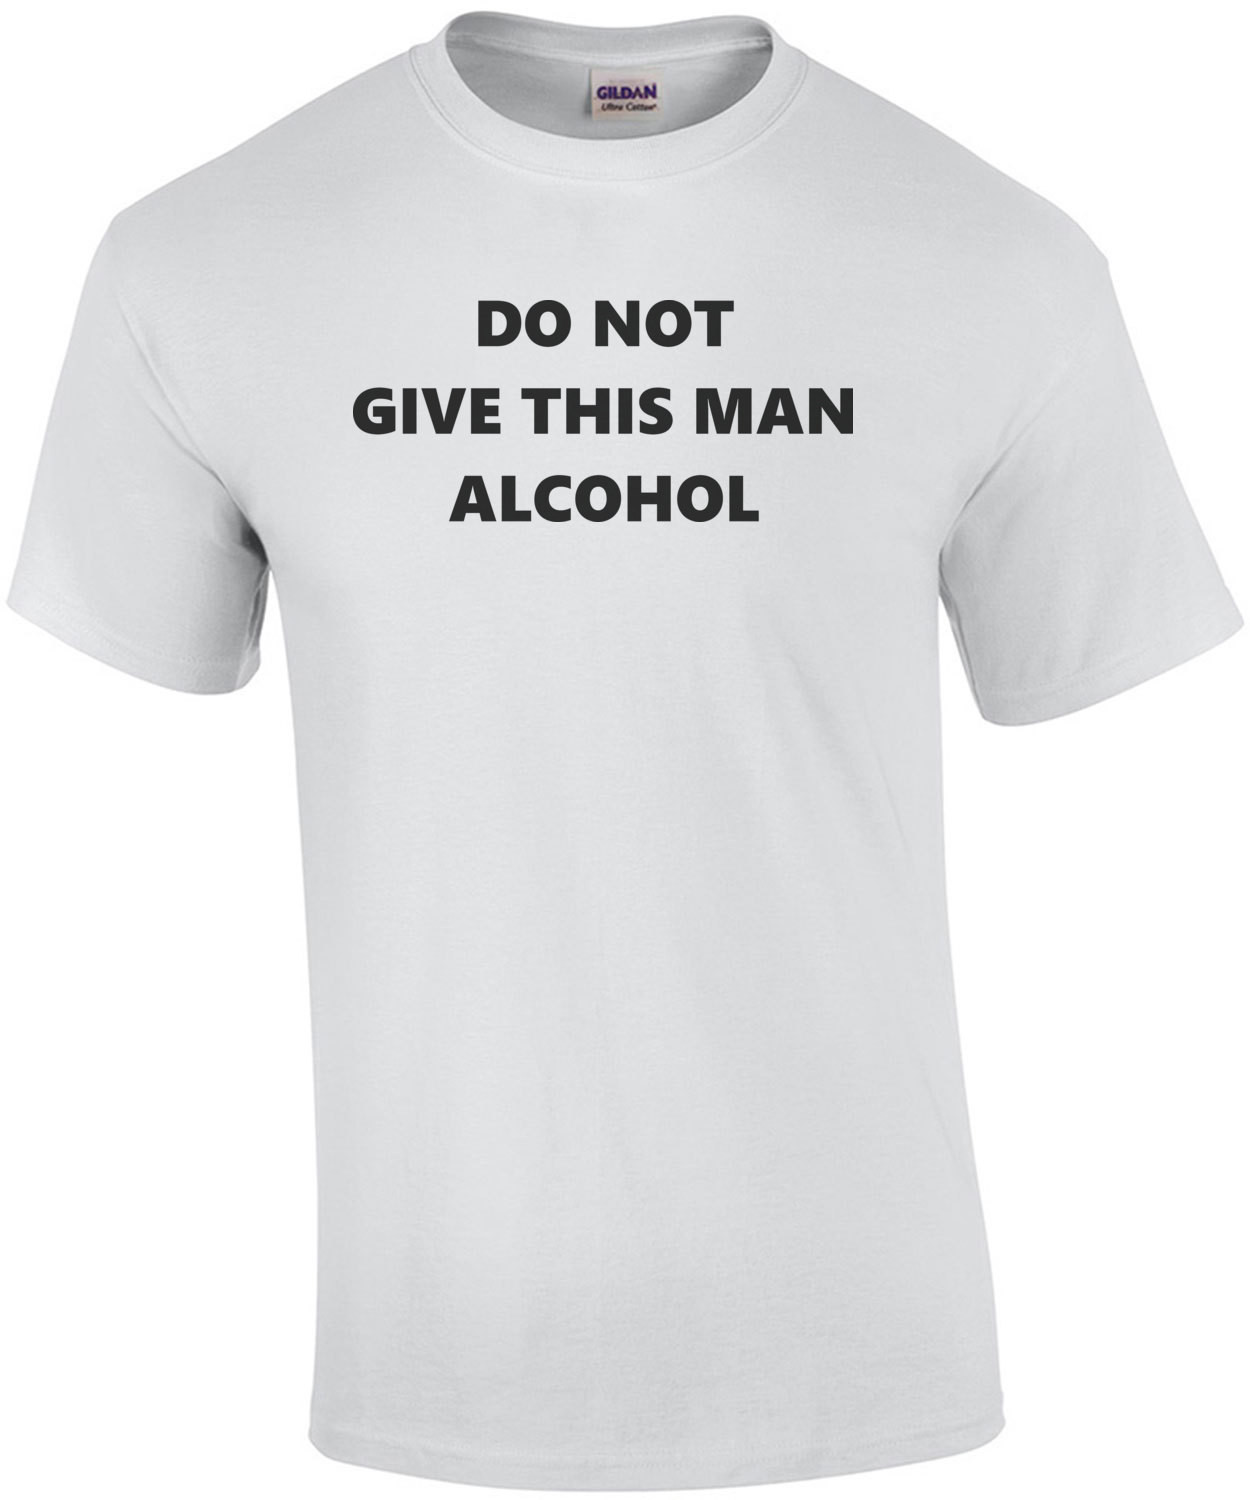 DO NOT GIVE THIS MAN ALCOHOL Shirt